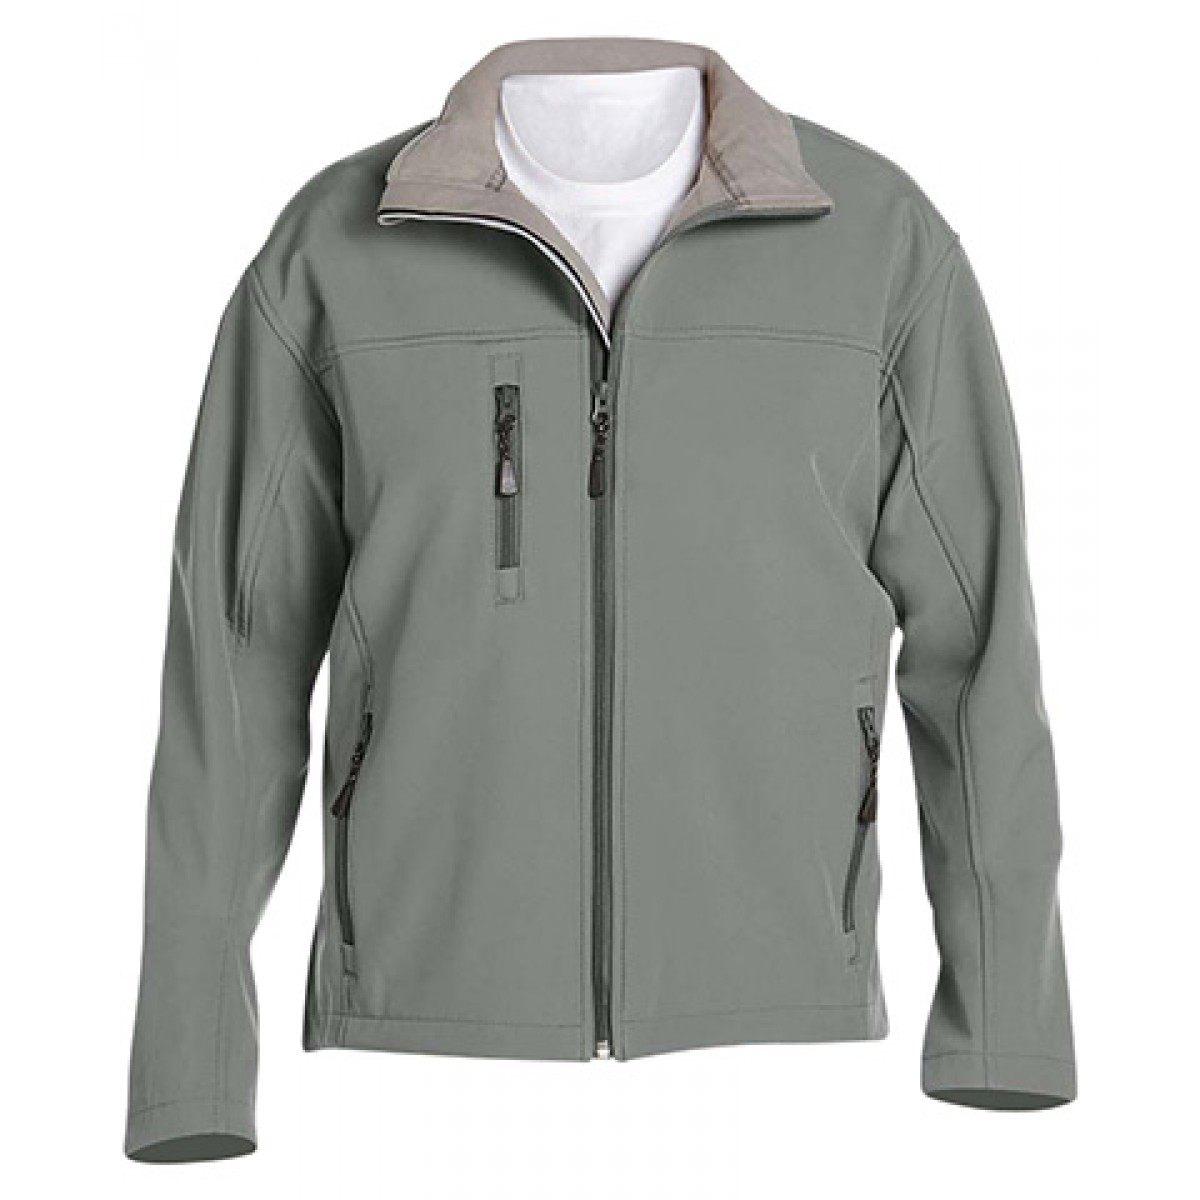 Men's Soft Shell Jacket-Charocal-3XL